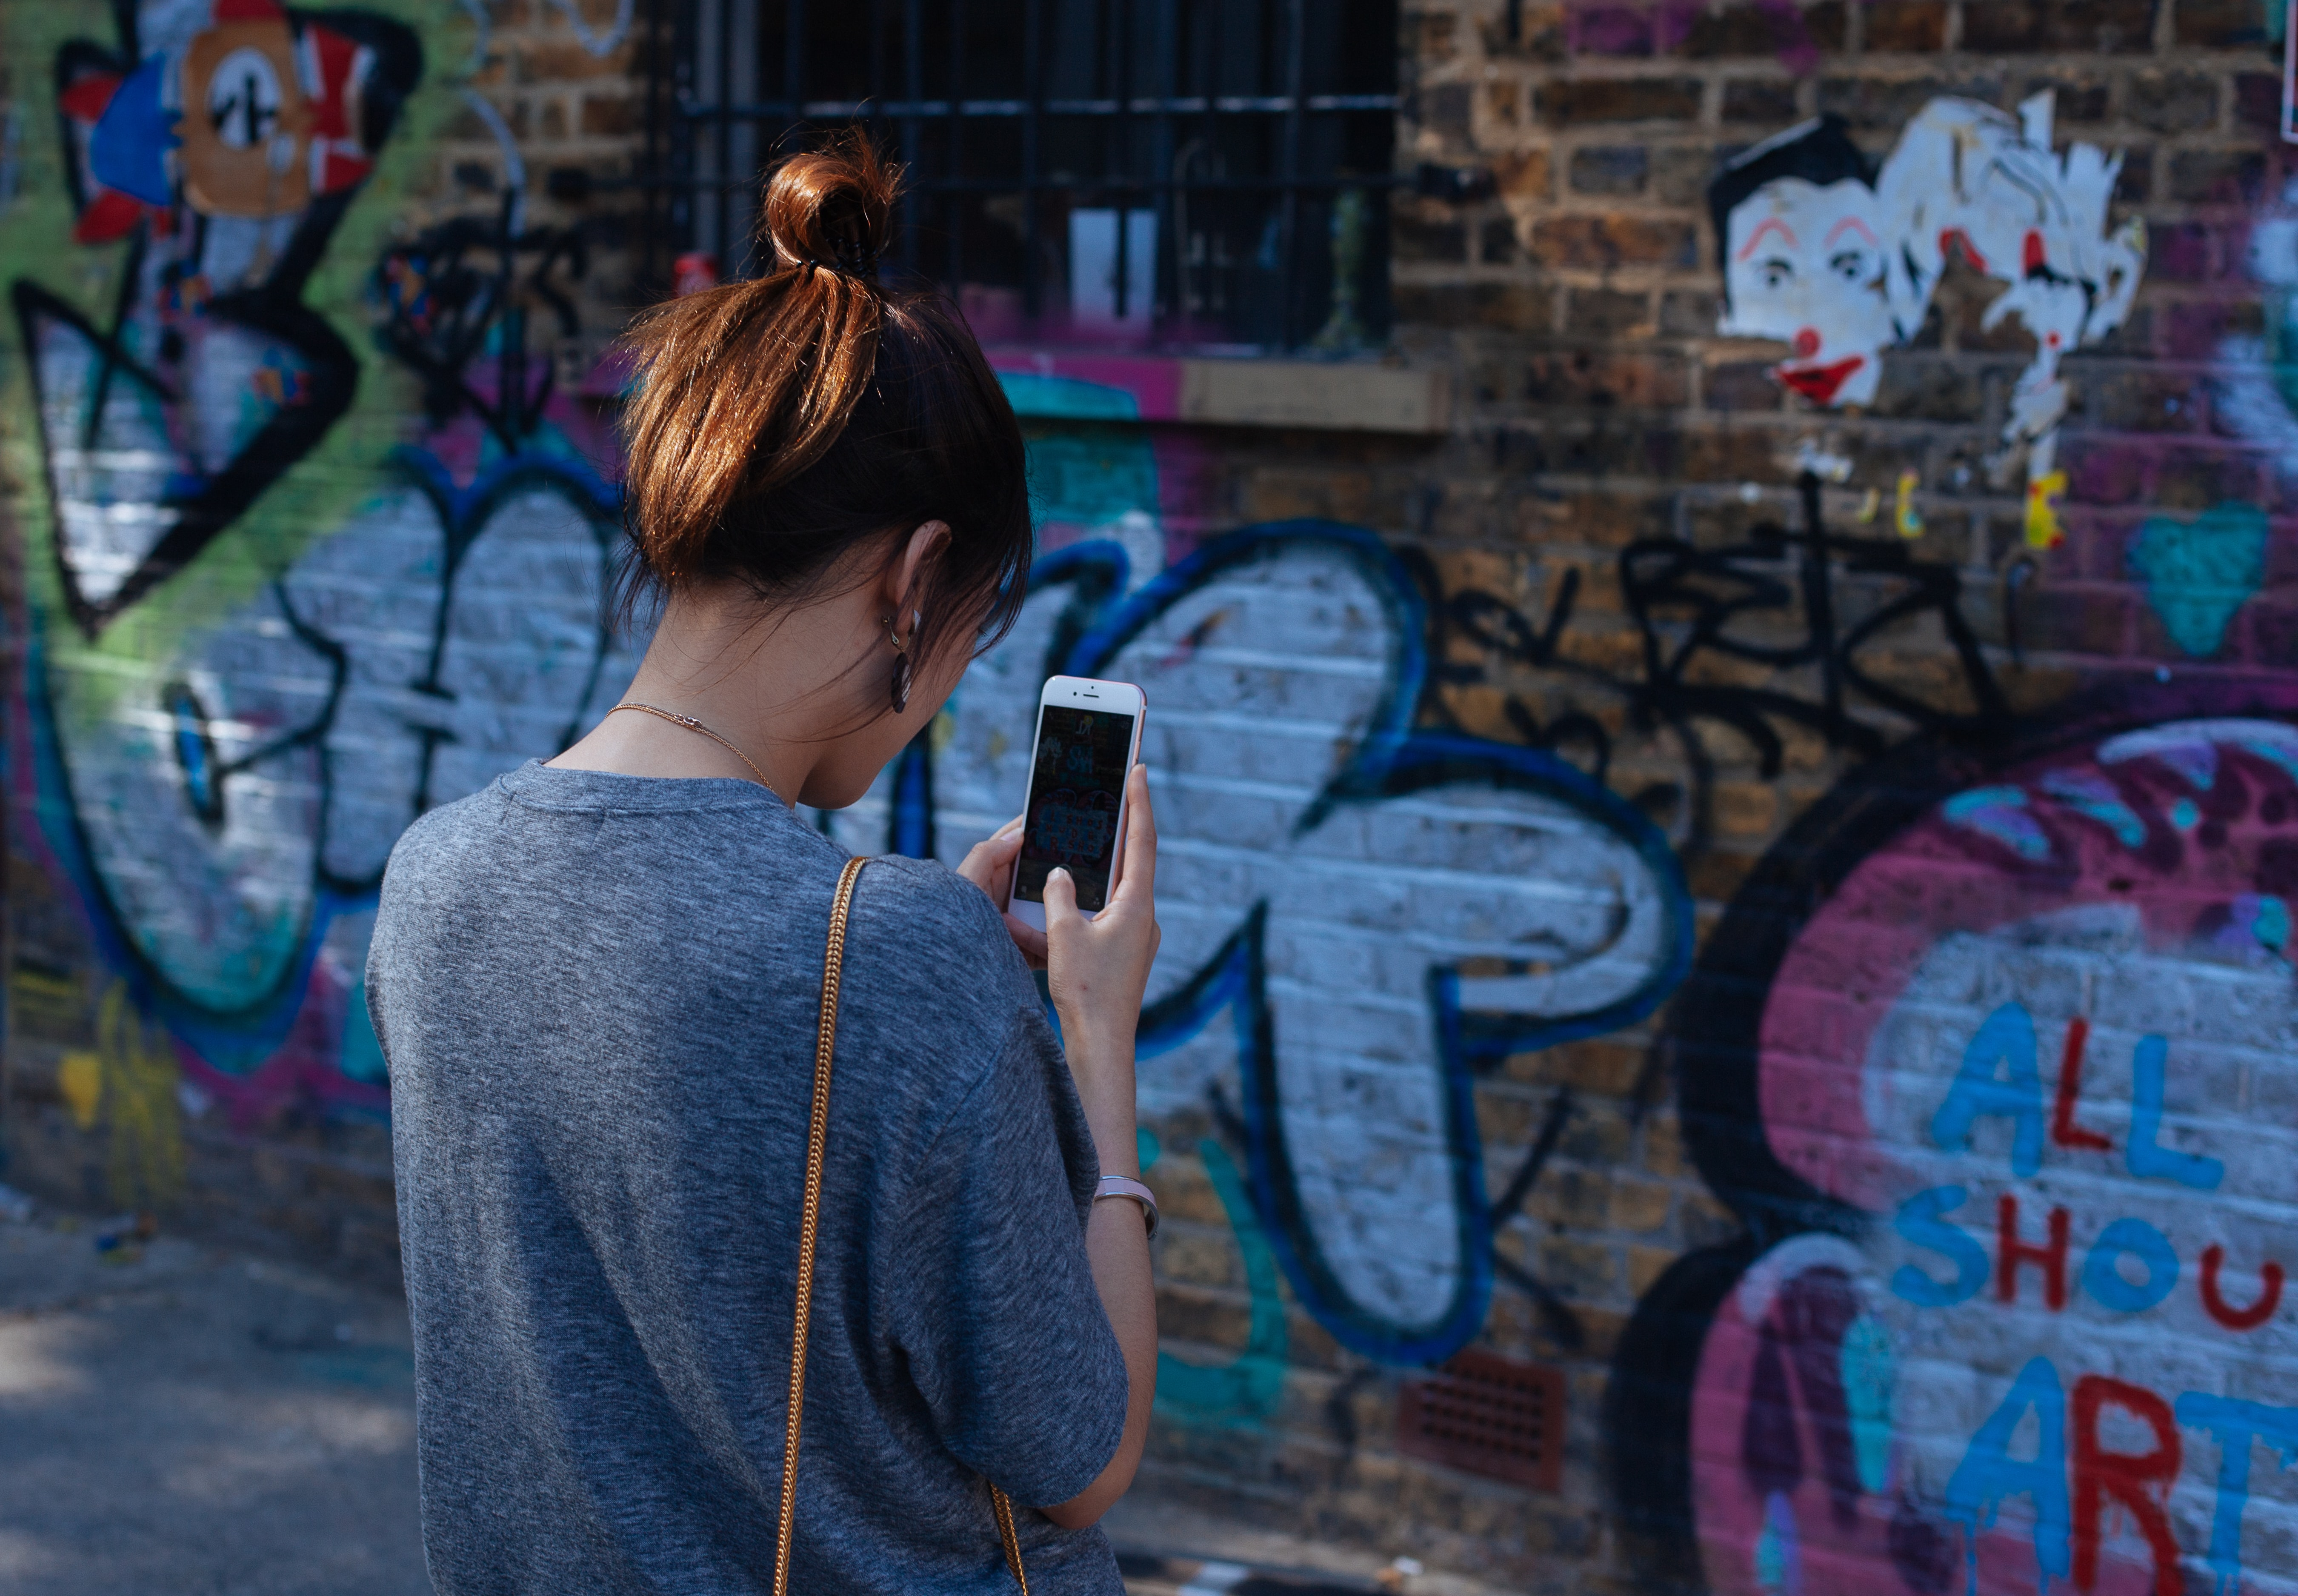 Young woman on iphone with grey jumper taking picture of graffiti on wall at Brick Lane